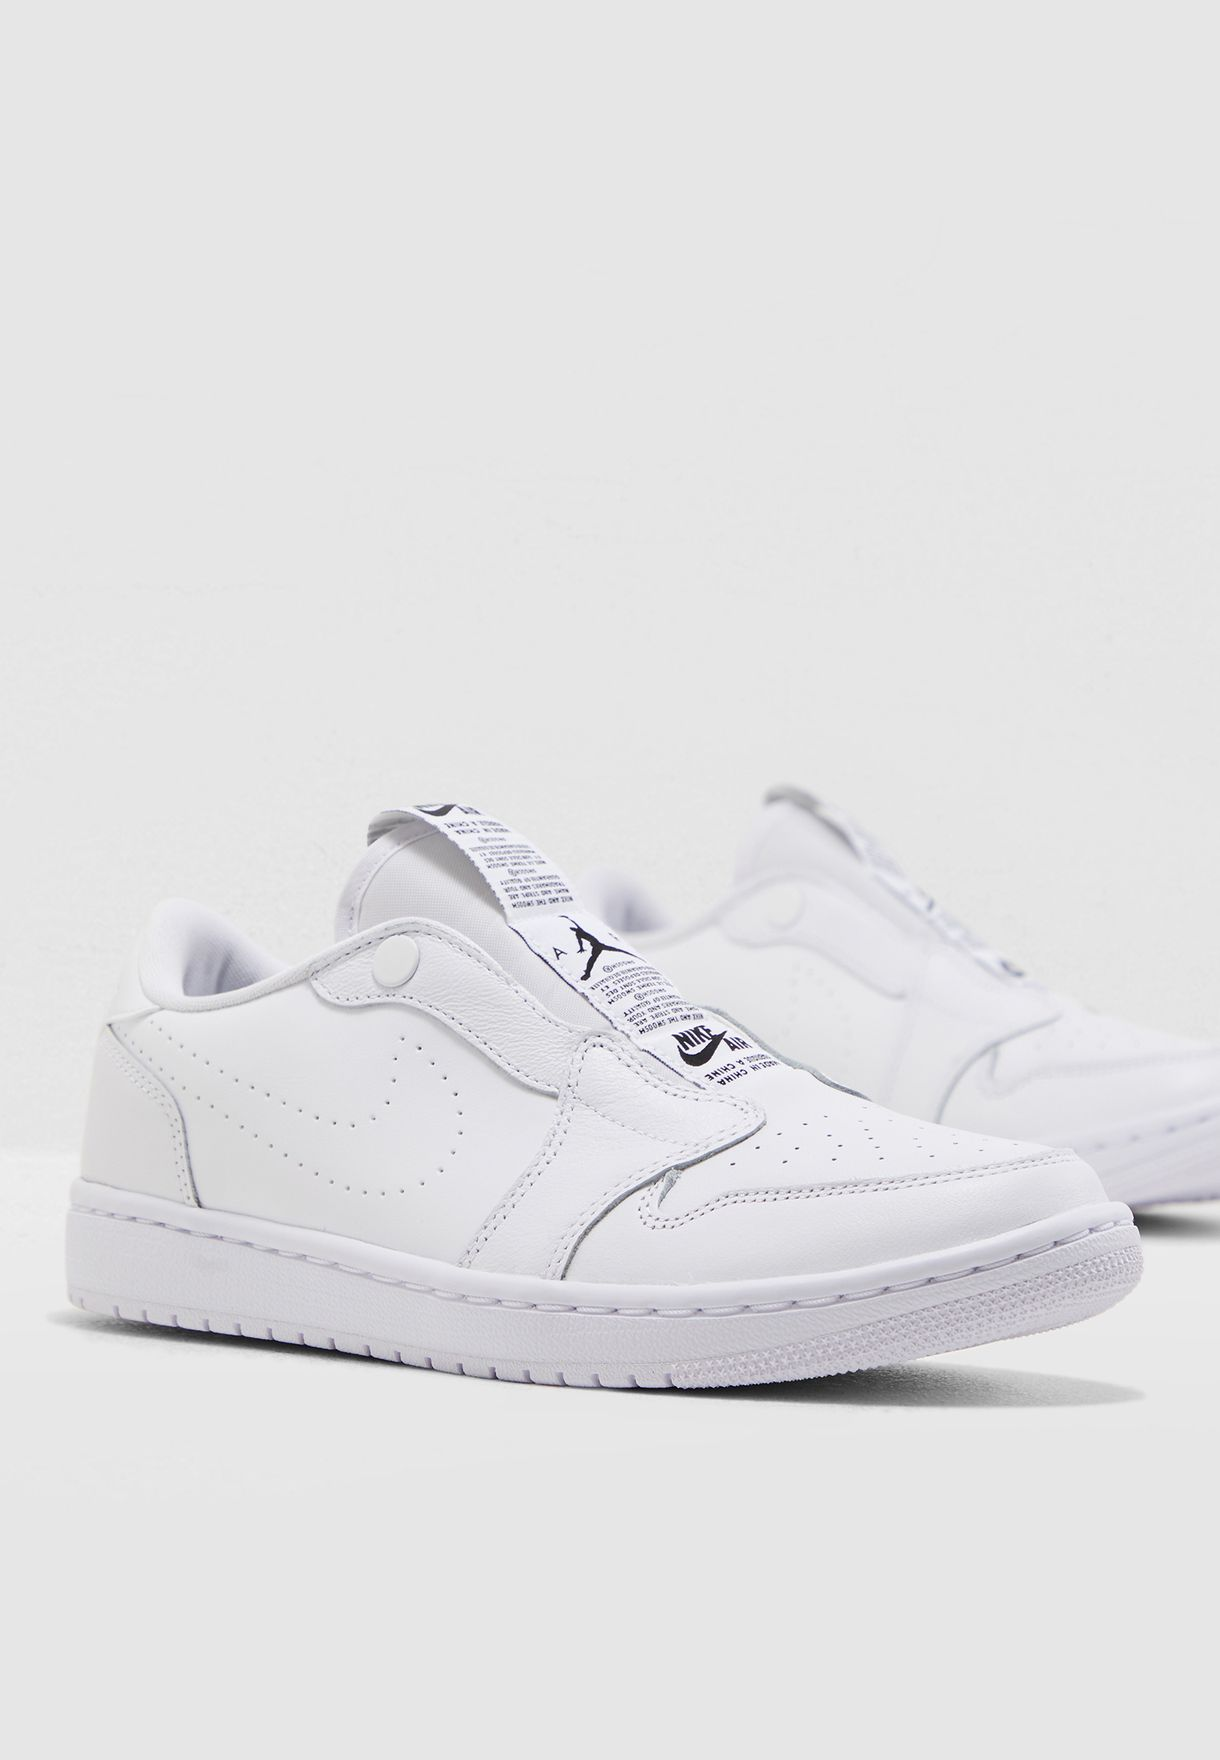 e112bcbf8f888 Shop Nike white Air Jordan 1 Retro Low Slip AV3918-100 for Women in ...